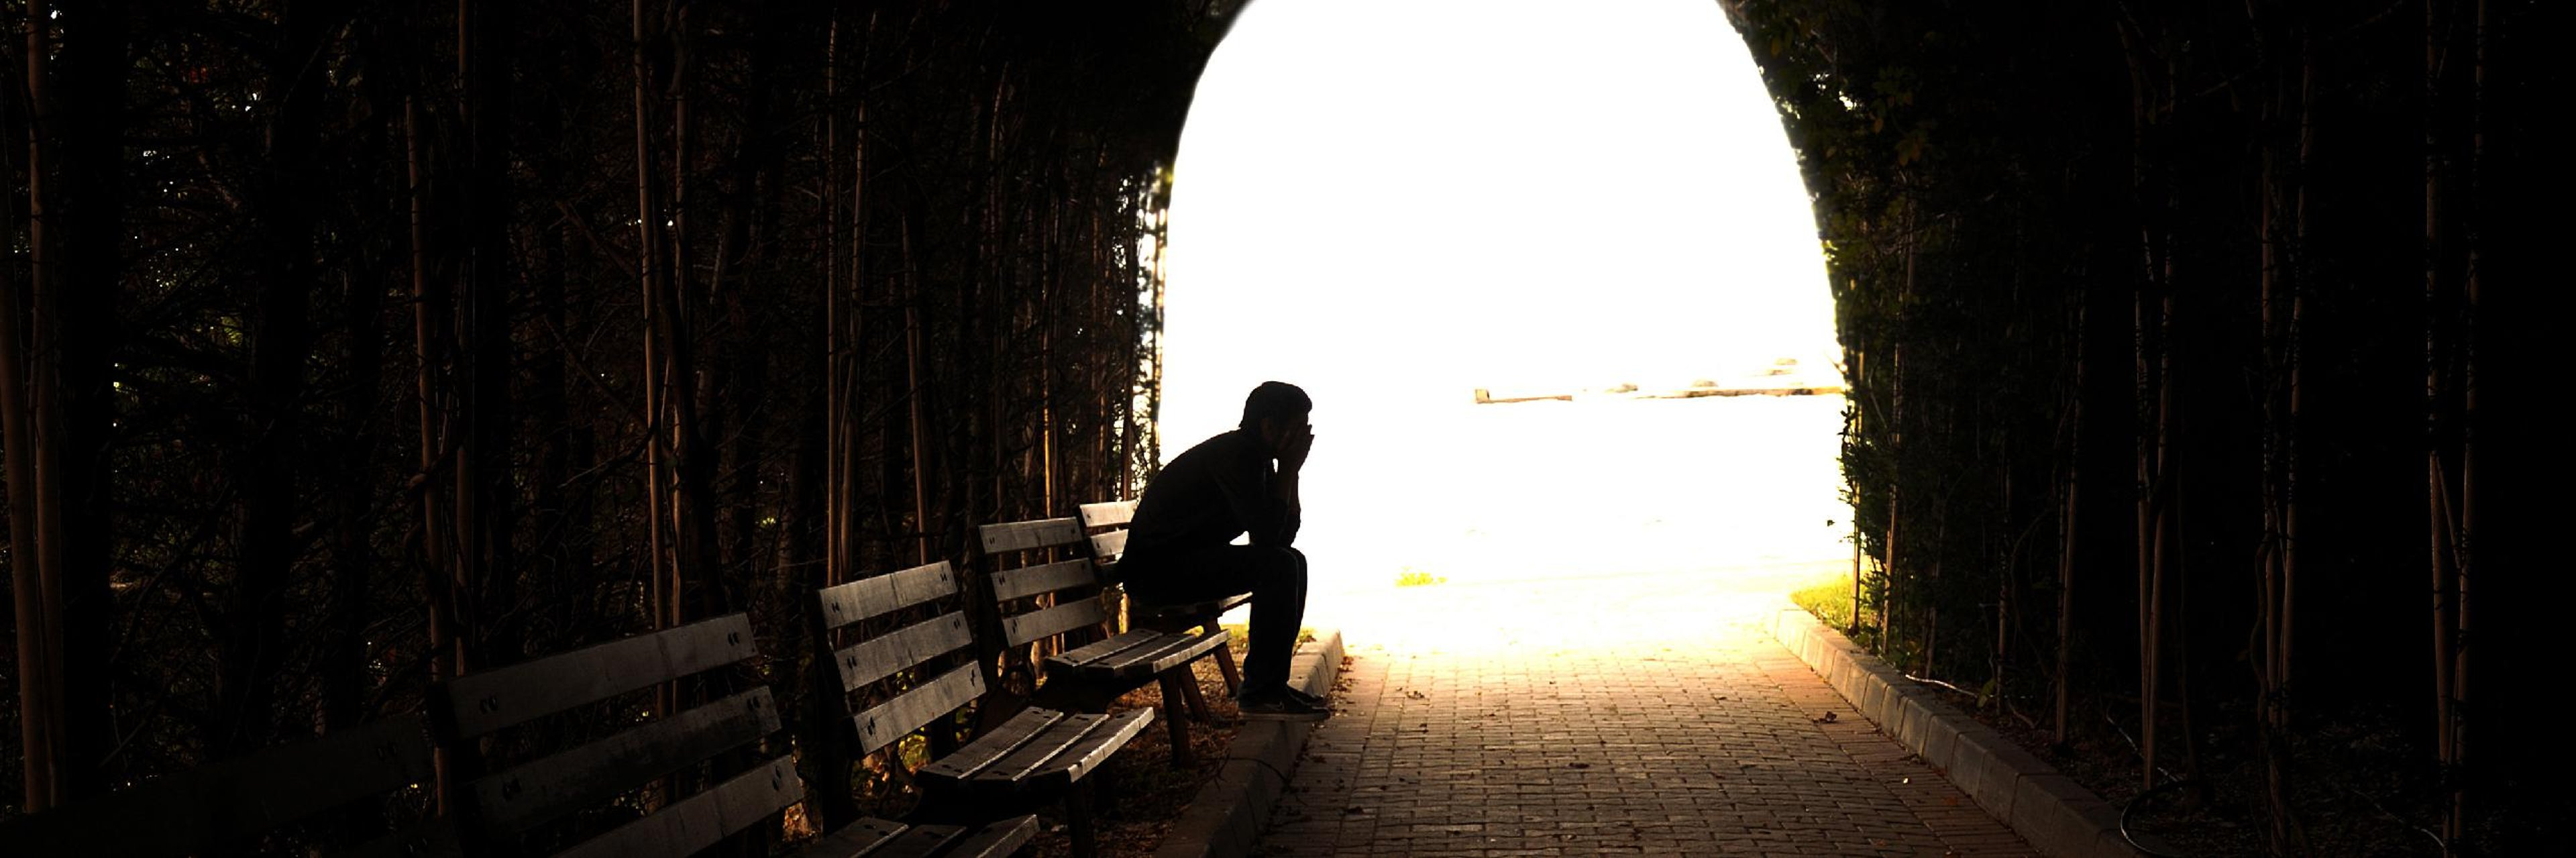 Reframing the Suffering Narrative: Can Affliction Direct Us to Our Calling?